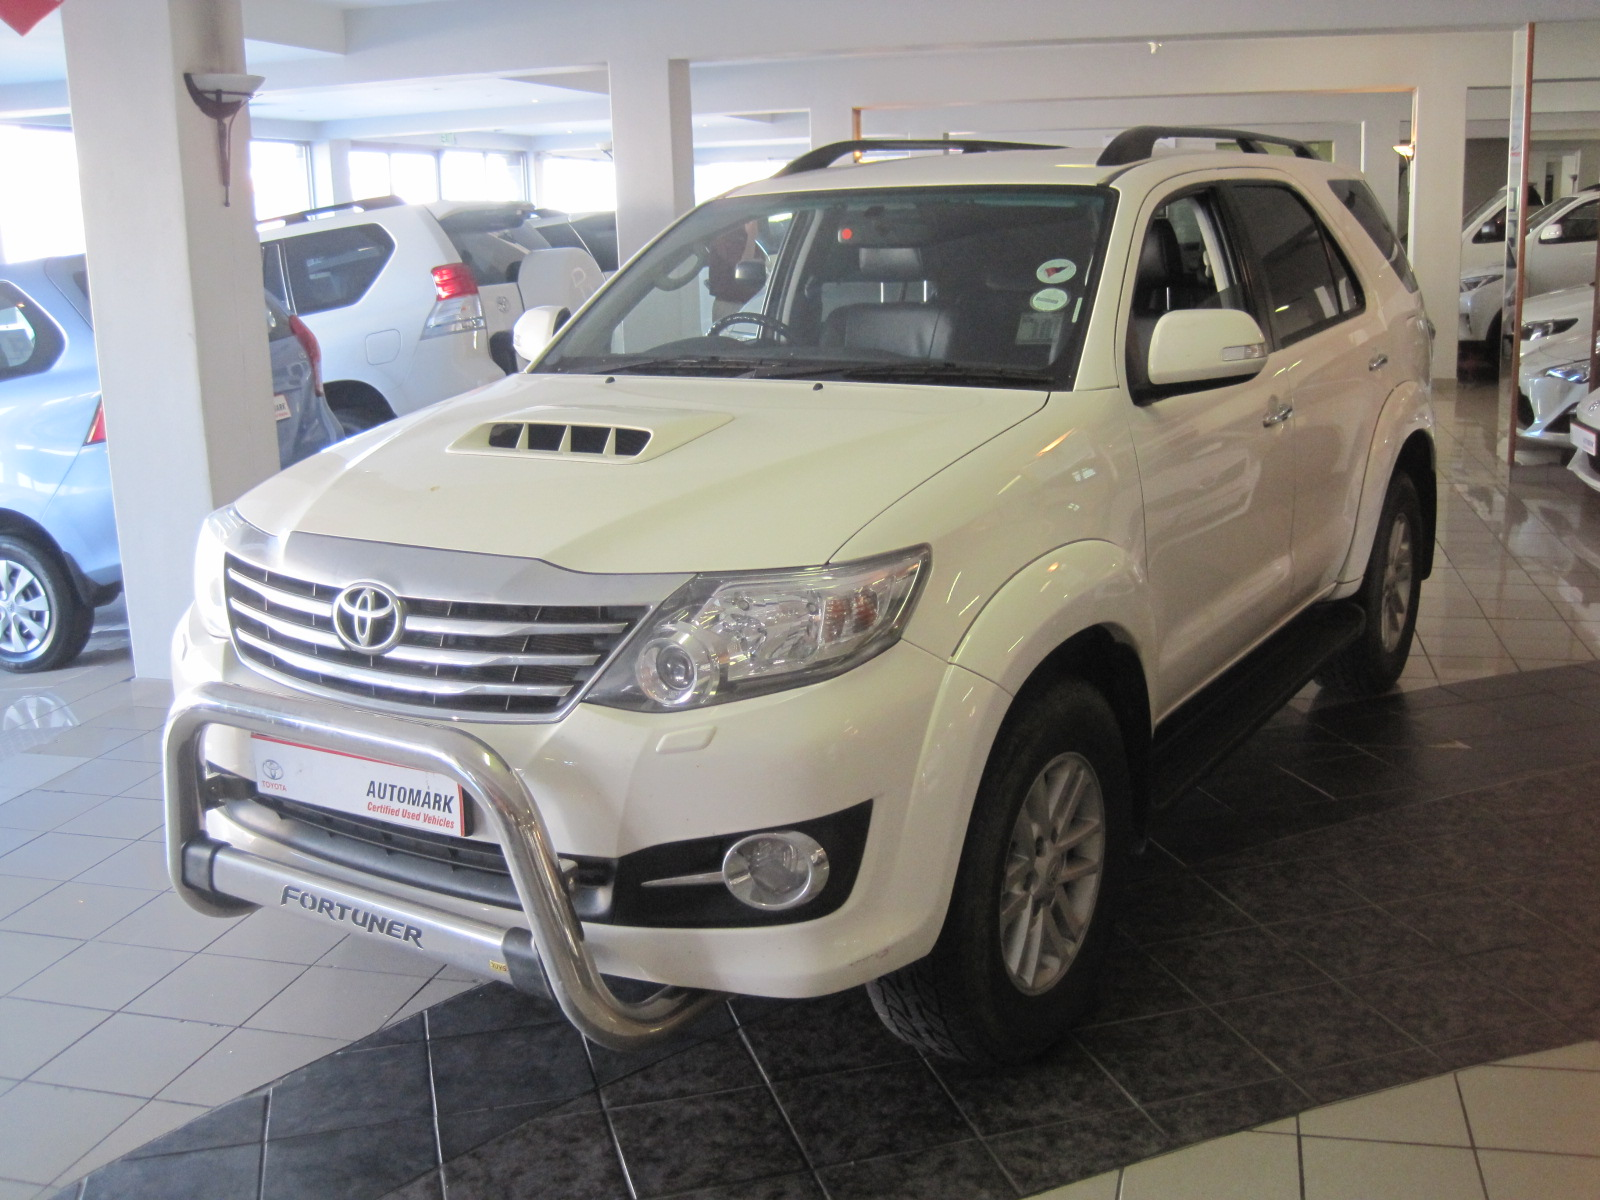 gumtree olx used cars for sale in cape town cars bakkies in cape town